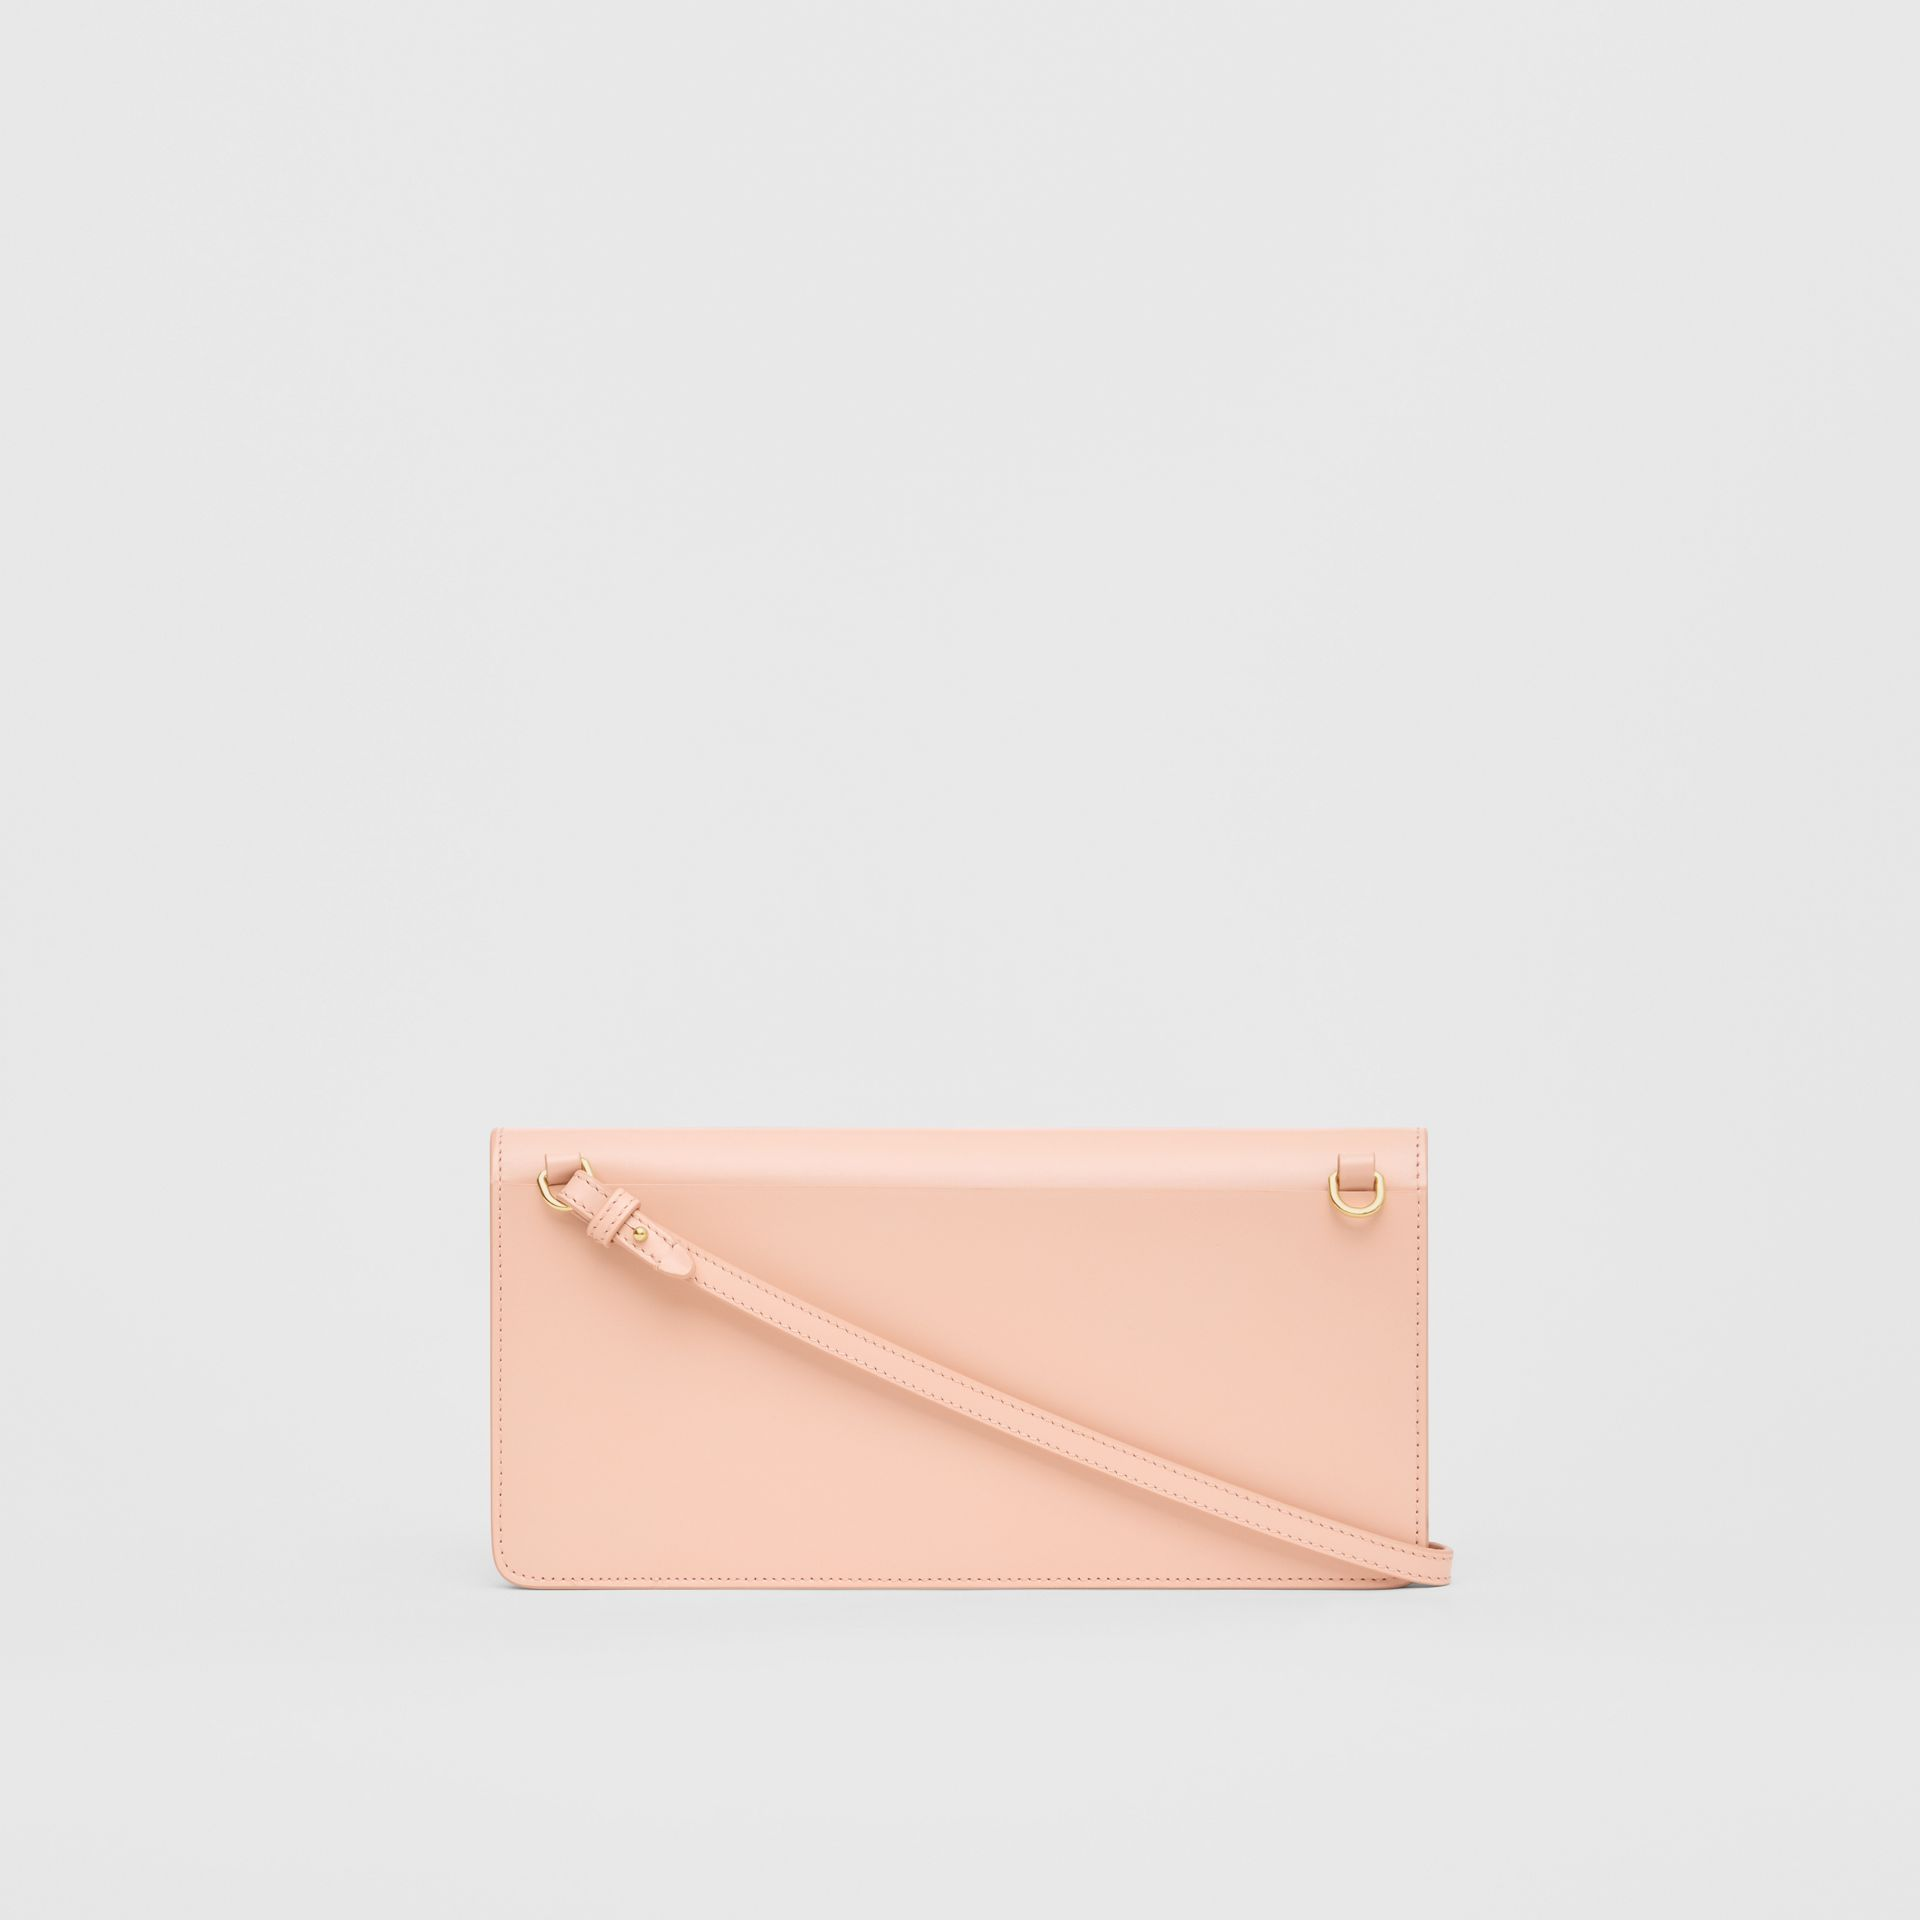 Horseferry Print Leather Bag with Detachable Strap in Blush Pink - Women | Burberry Australia - gallery image 7